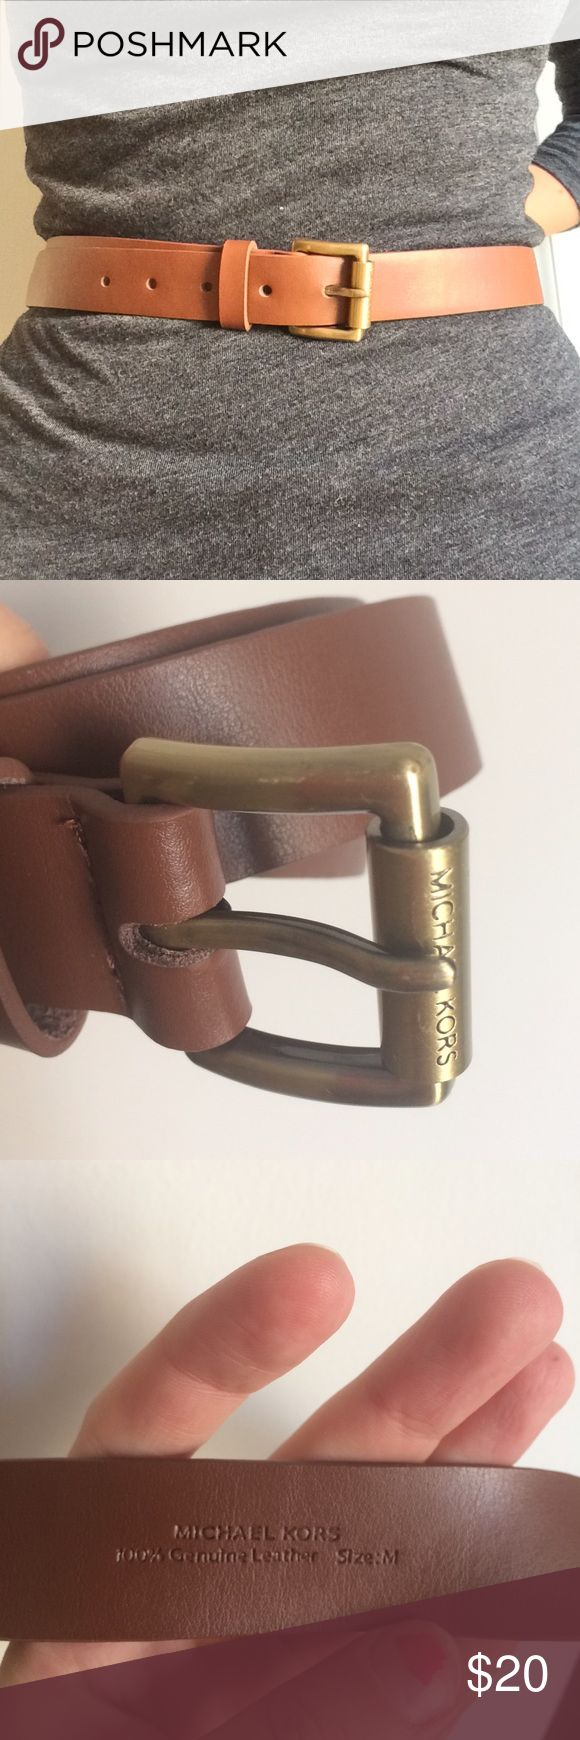 """Offers! Michael Kors Leather Brown Belt - Medium Authentic quality leather belt by Michael Kors. Band (without buckle) measures 45"""" long and just over 1"""" wide. Smallest hole makes it 29"""", largest hole is at 33"""" long. Some markings on buckle (2nd photo). Brass/gold tone buckle. A crease at the end of the belt/some crinkly due to storage (4th photo). Worn a couple of times. Ask questions! I want you to be happy with your purchase. Offers welcome! Michael Kors Accessories Belts"""